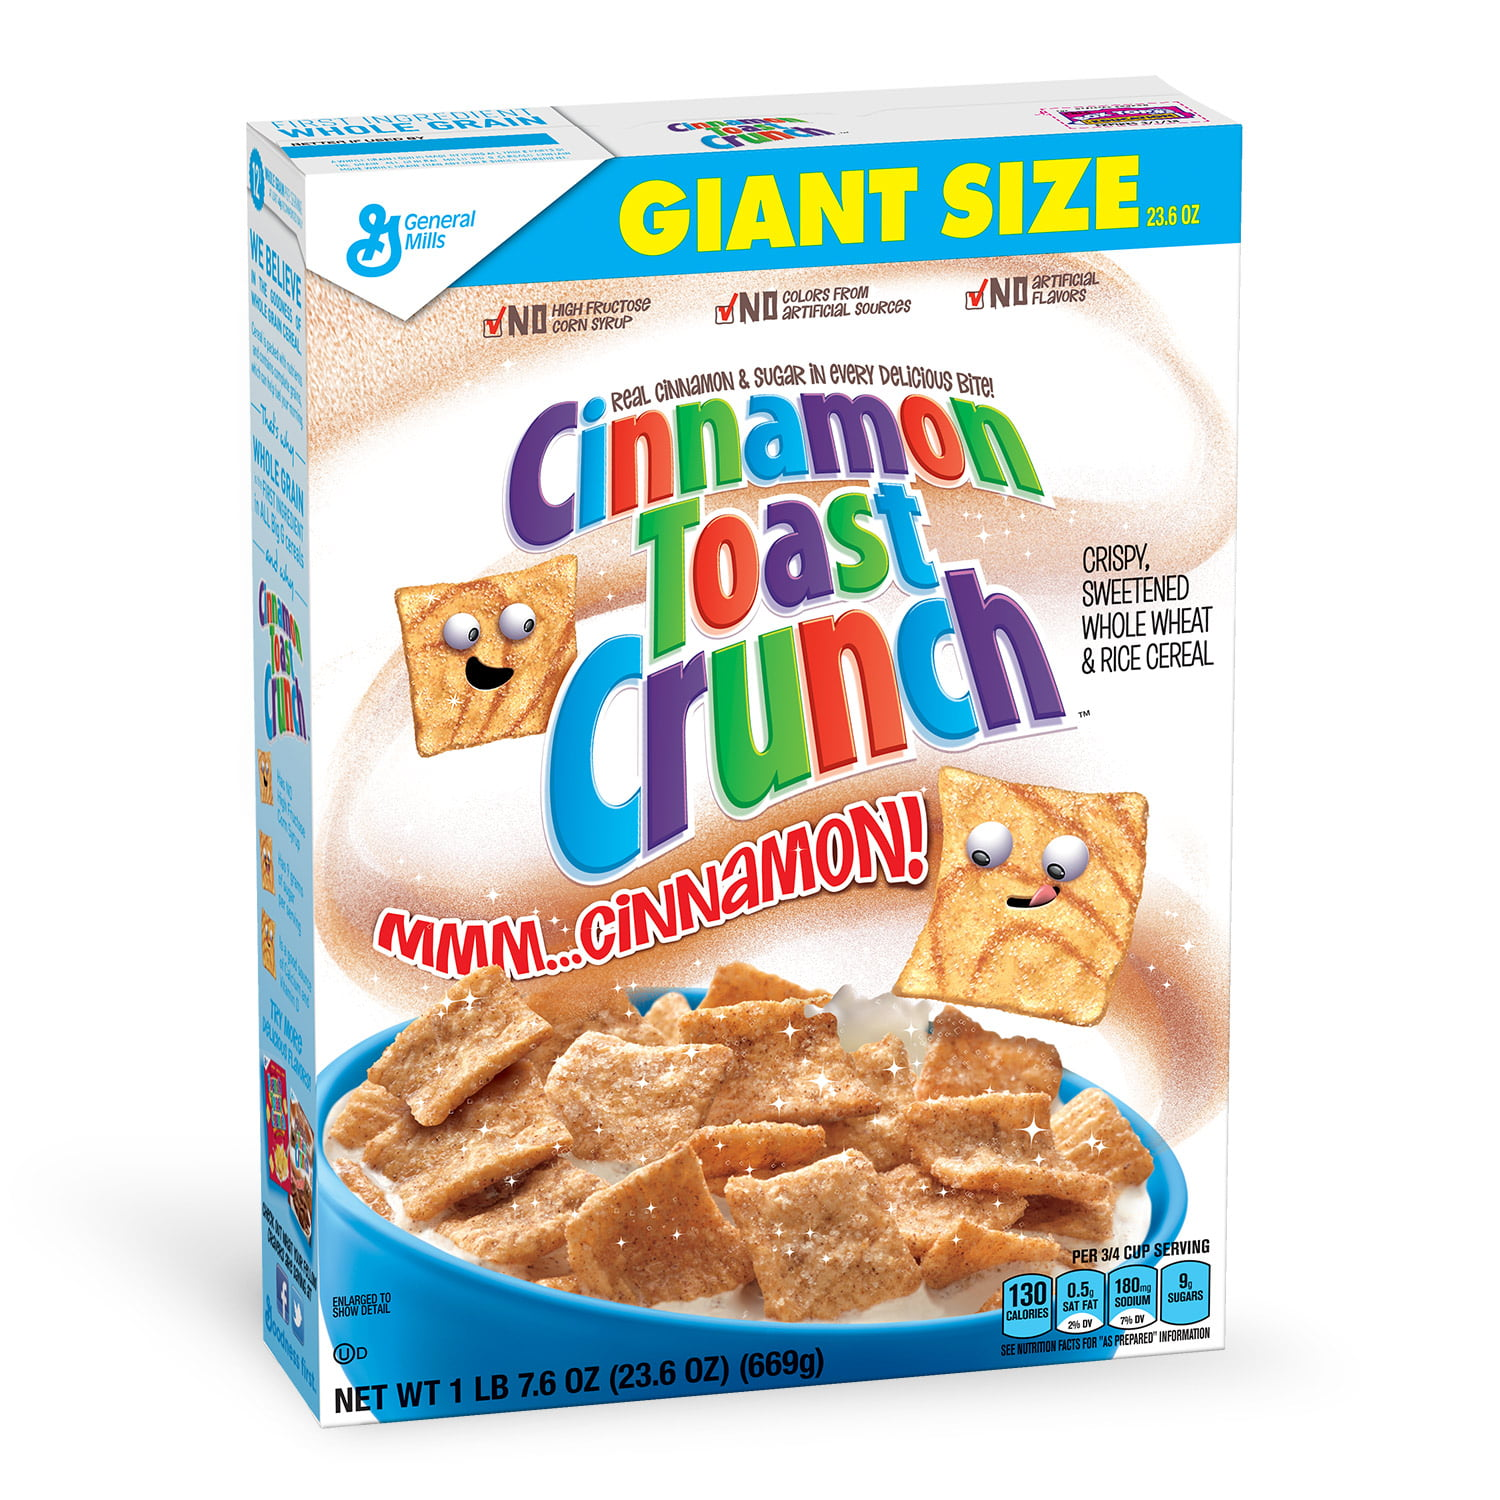 Cinnamon Cereal Crunch Toast 23.6 Oz Box